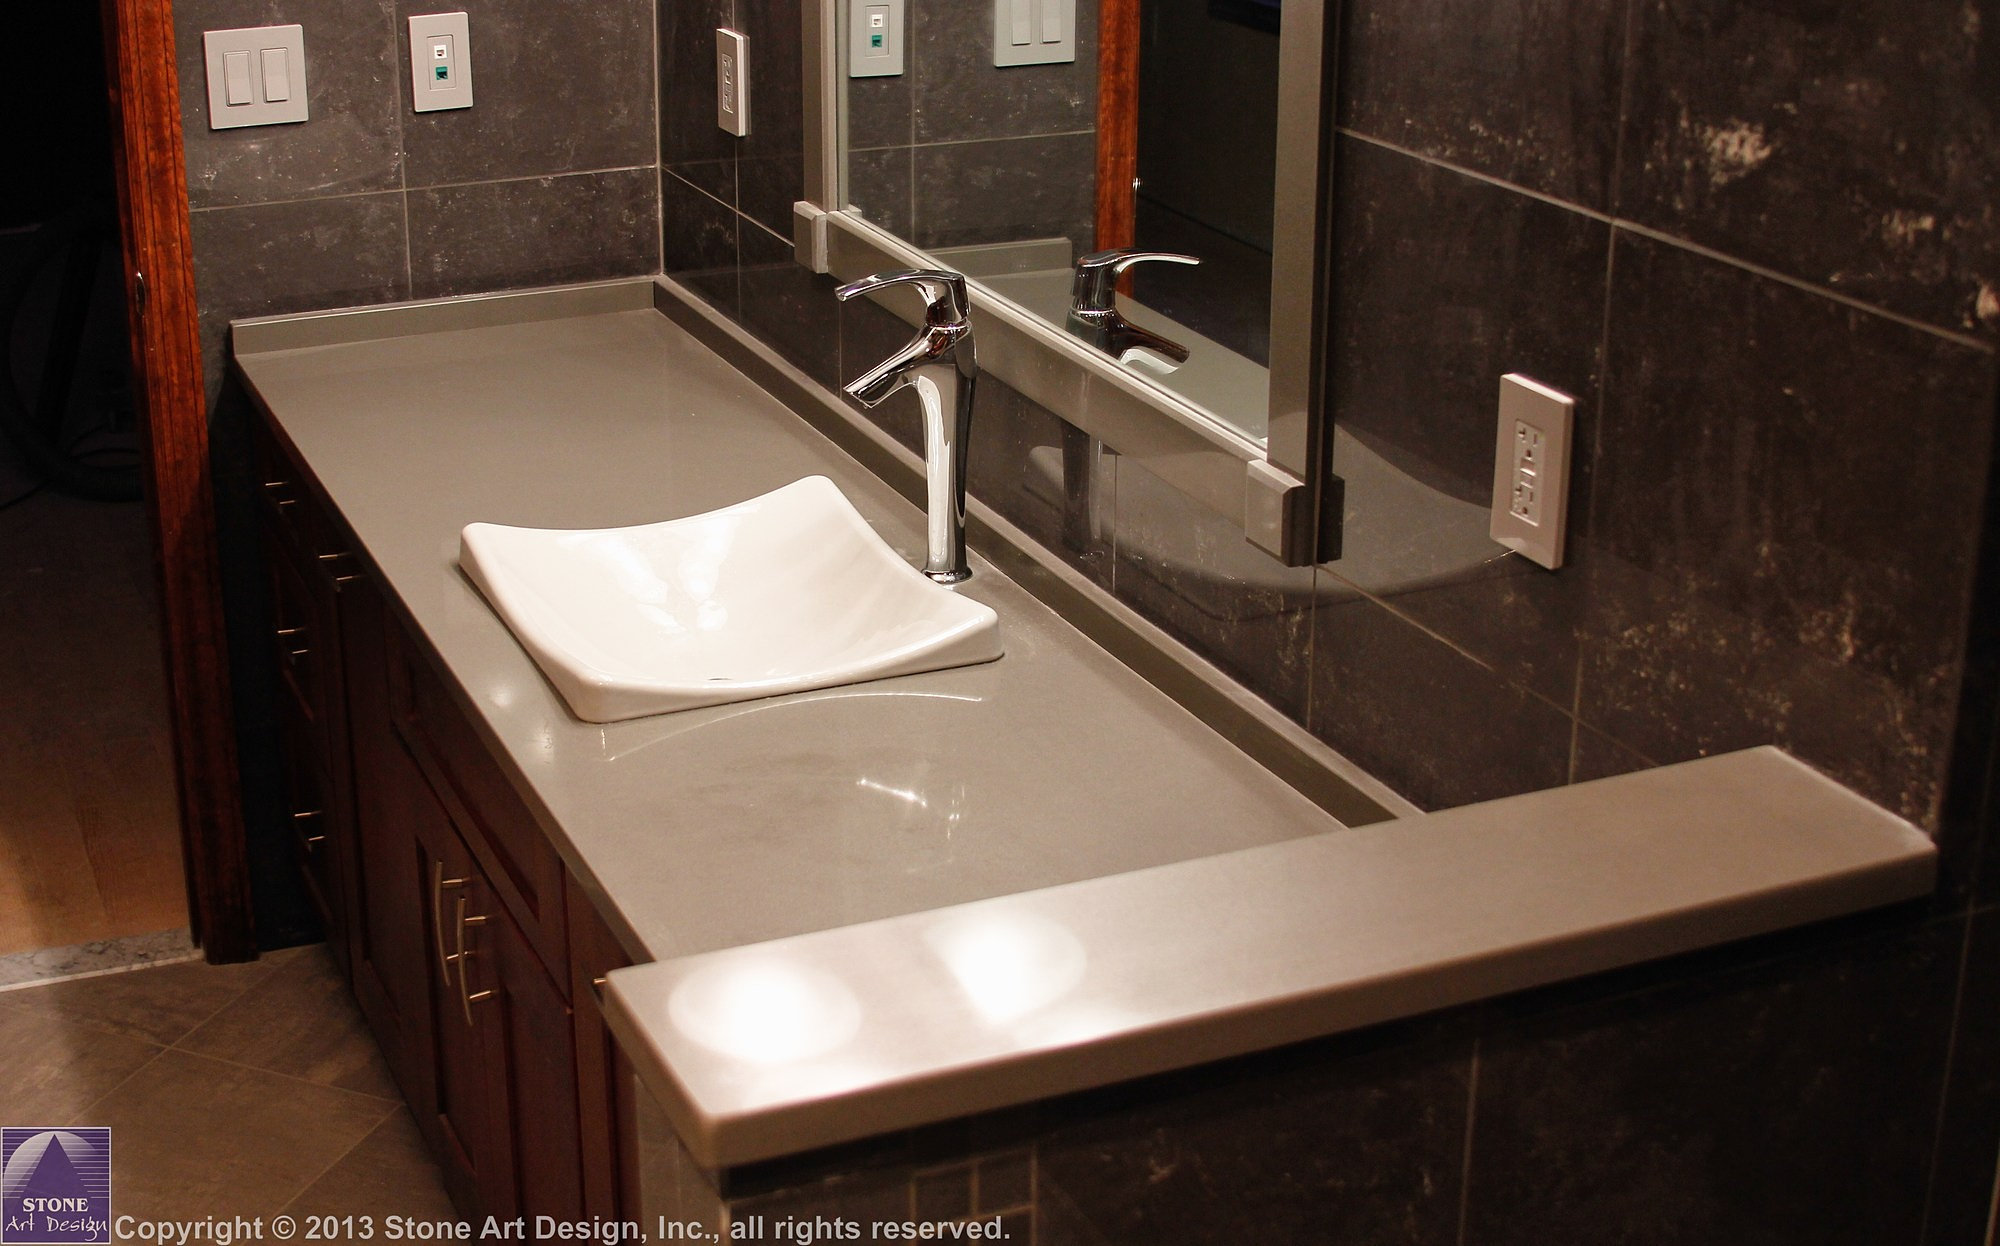 Kitchen Vanity Cabinets Stone Art Design Kitchen And Bath Remodeling Cabinets